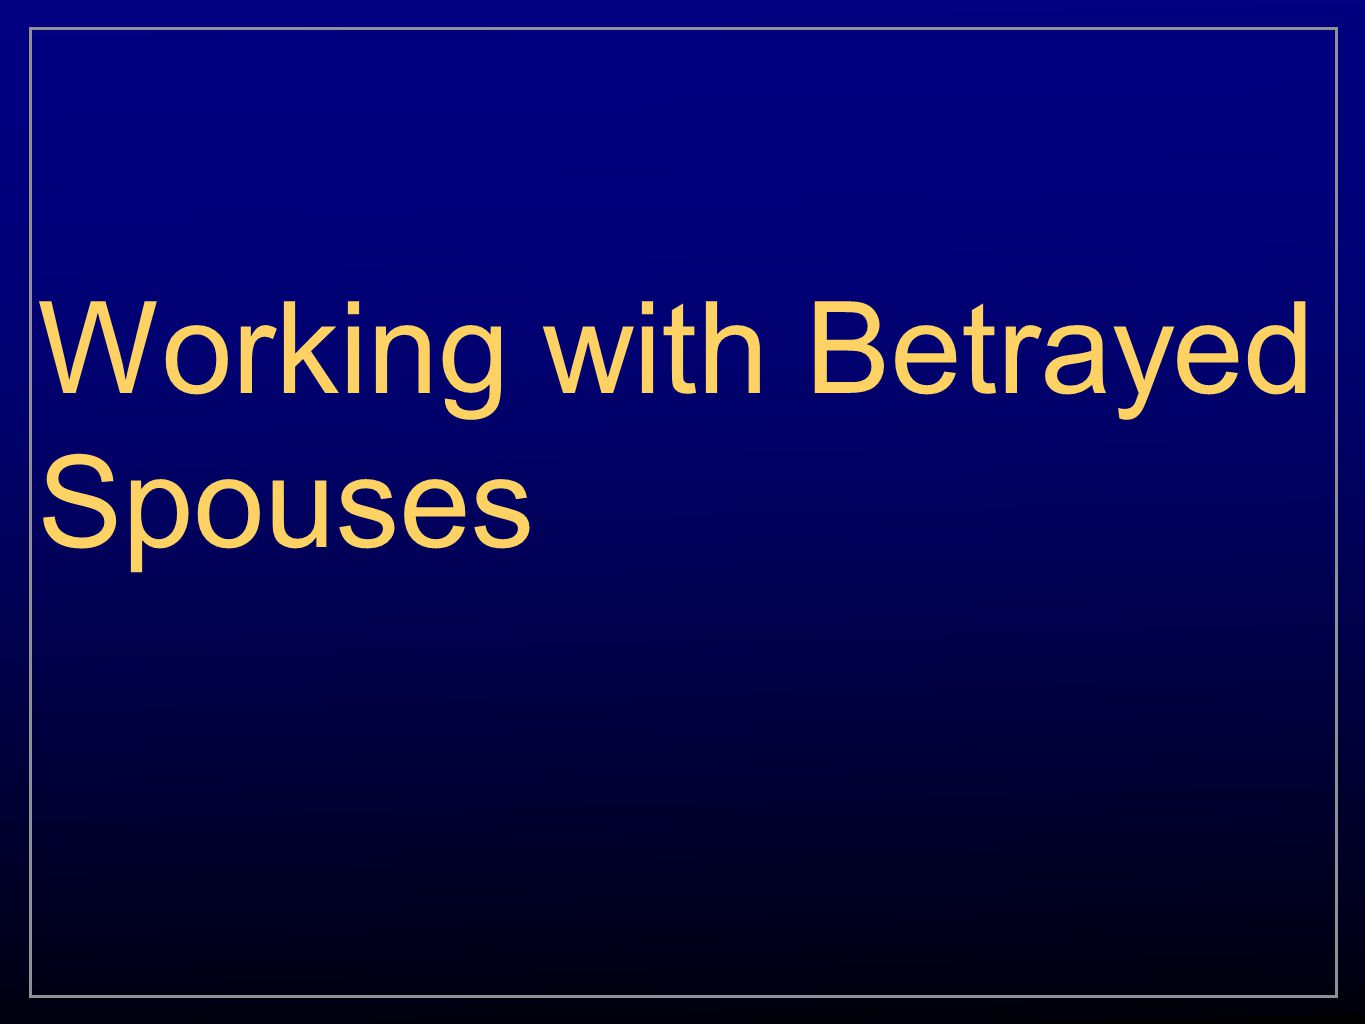 Working with Betrayed Spouses